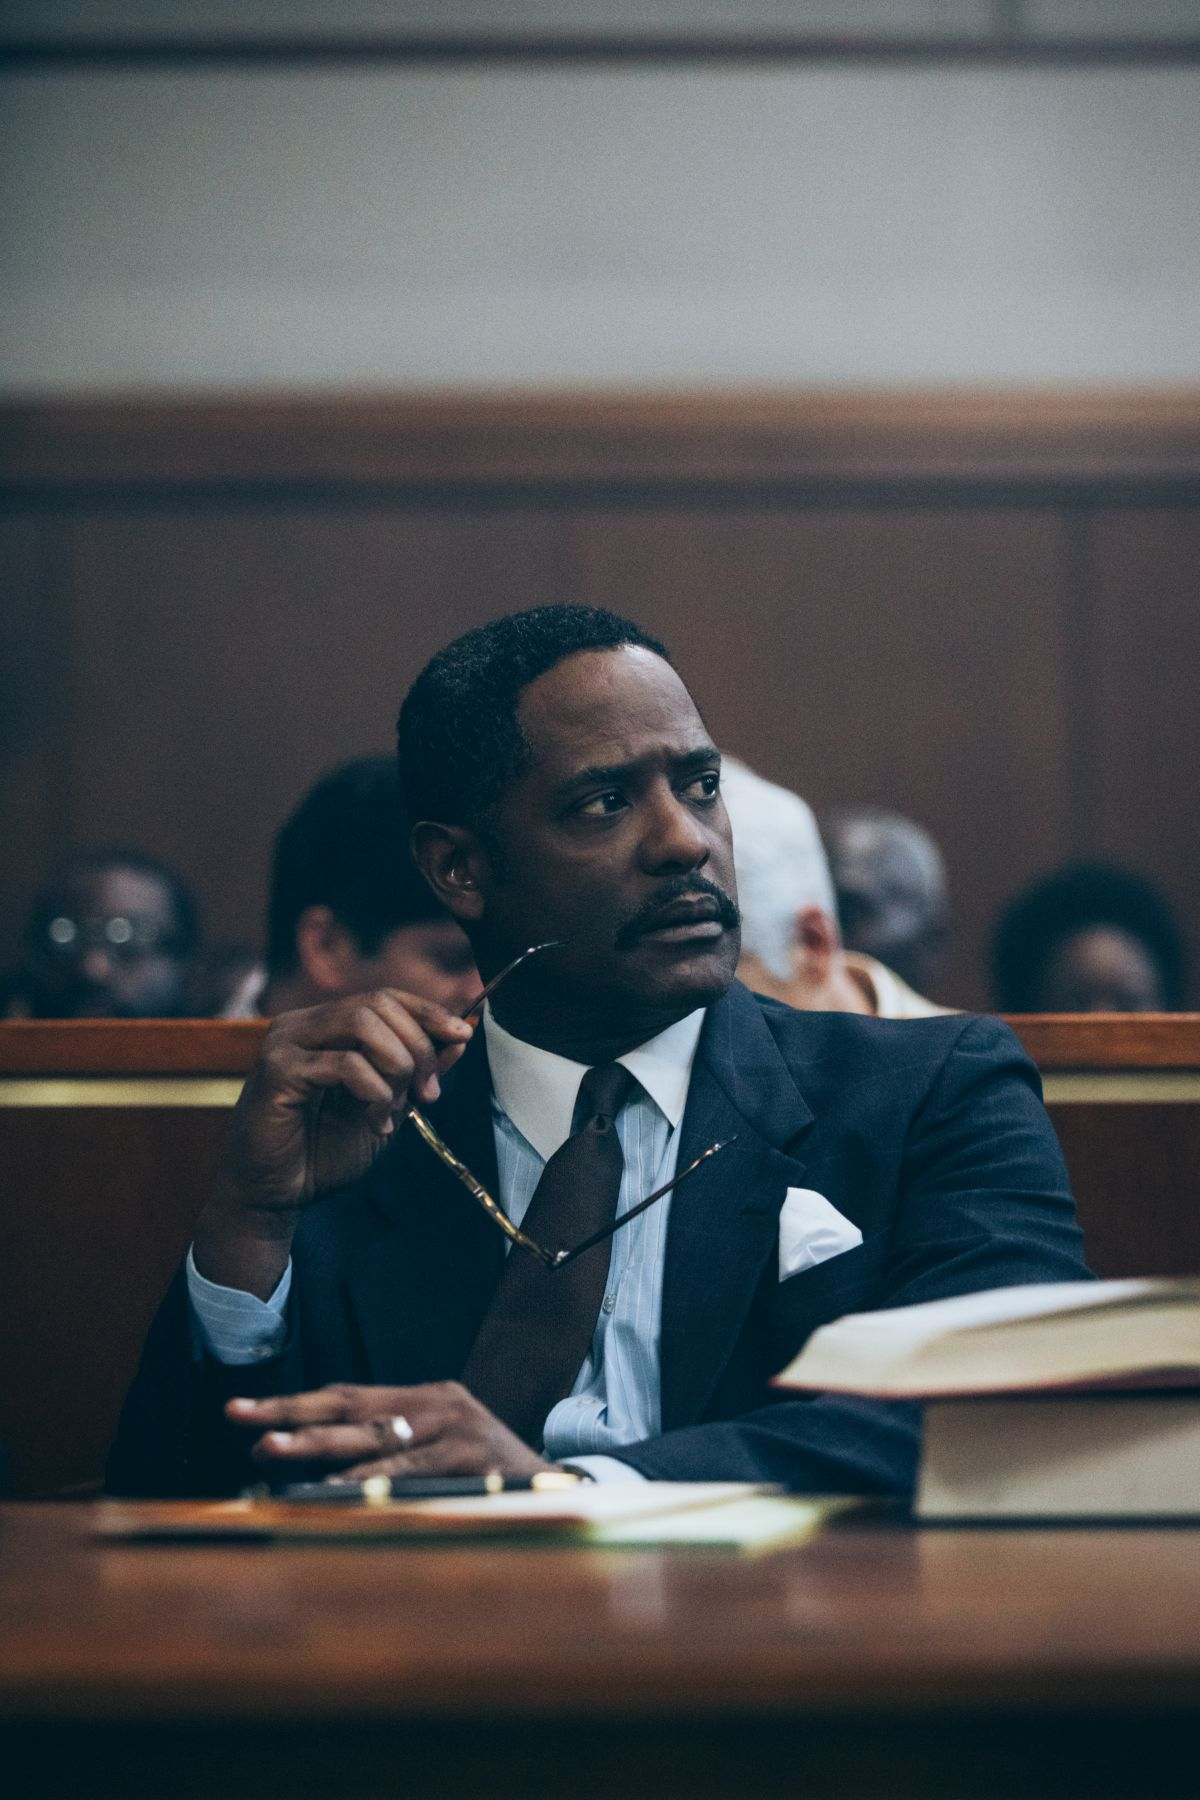 Blair Underwood as Bobby Burns